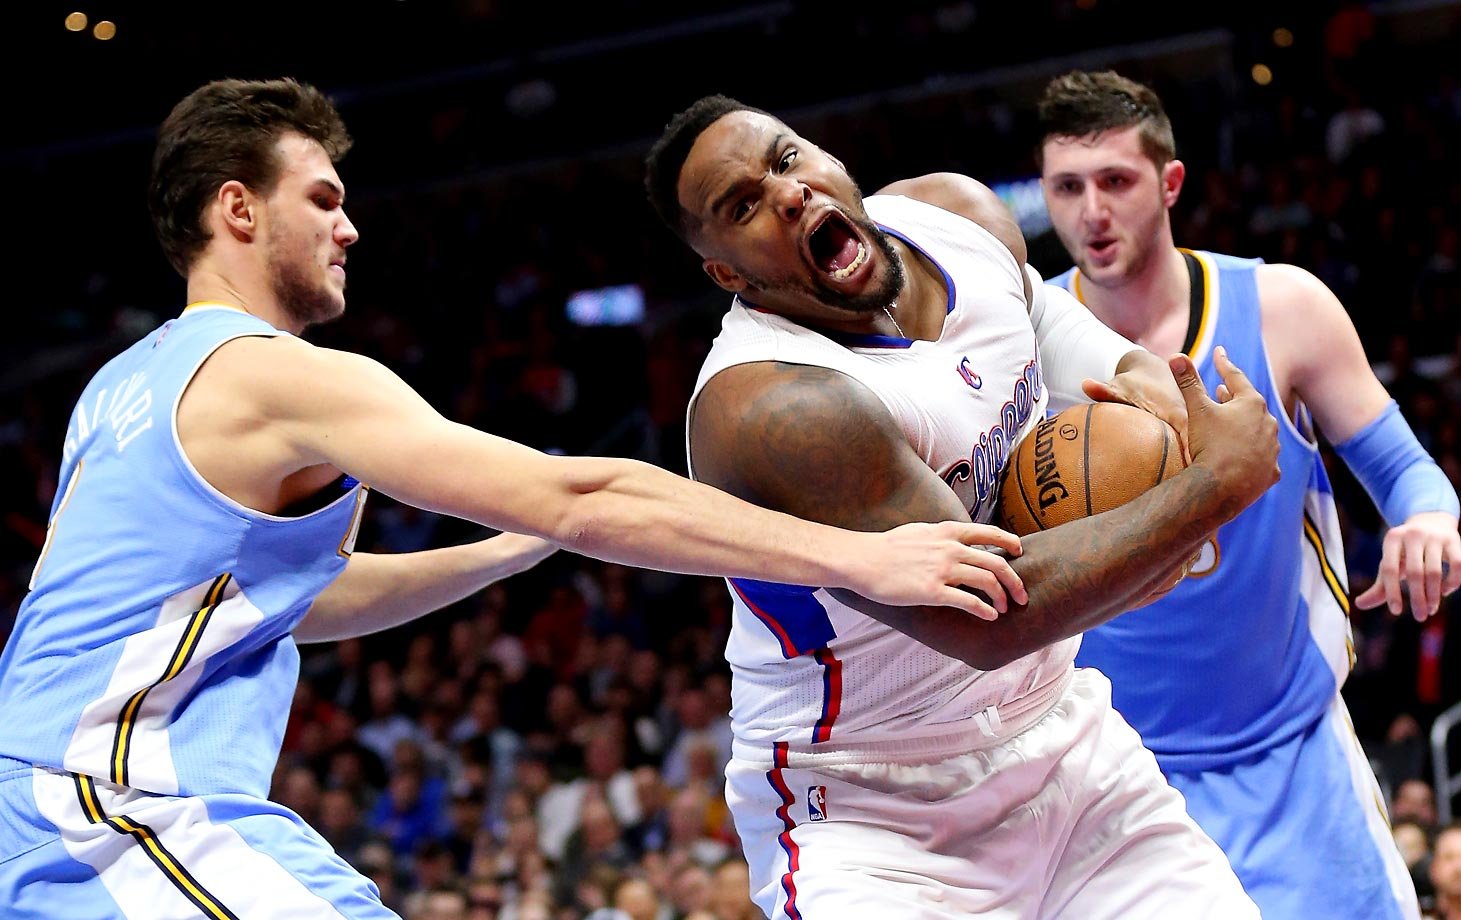 Glen Davis of the Los Angeles Clippers fights to control a loose ball against Danilo Gallinari of the Denver Nuggets. The Clippers won 102-98.